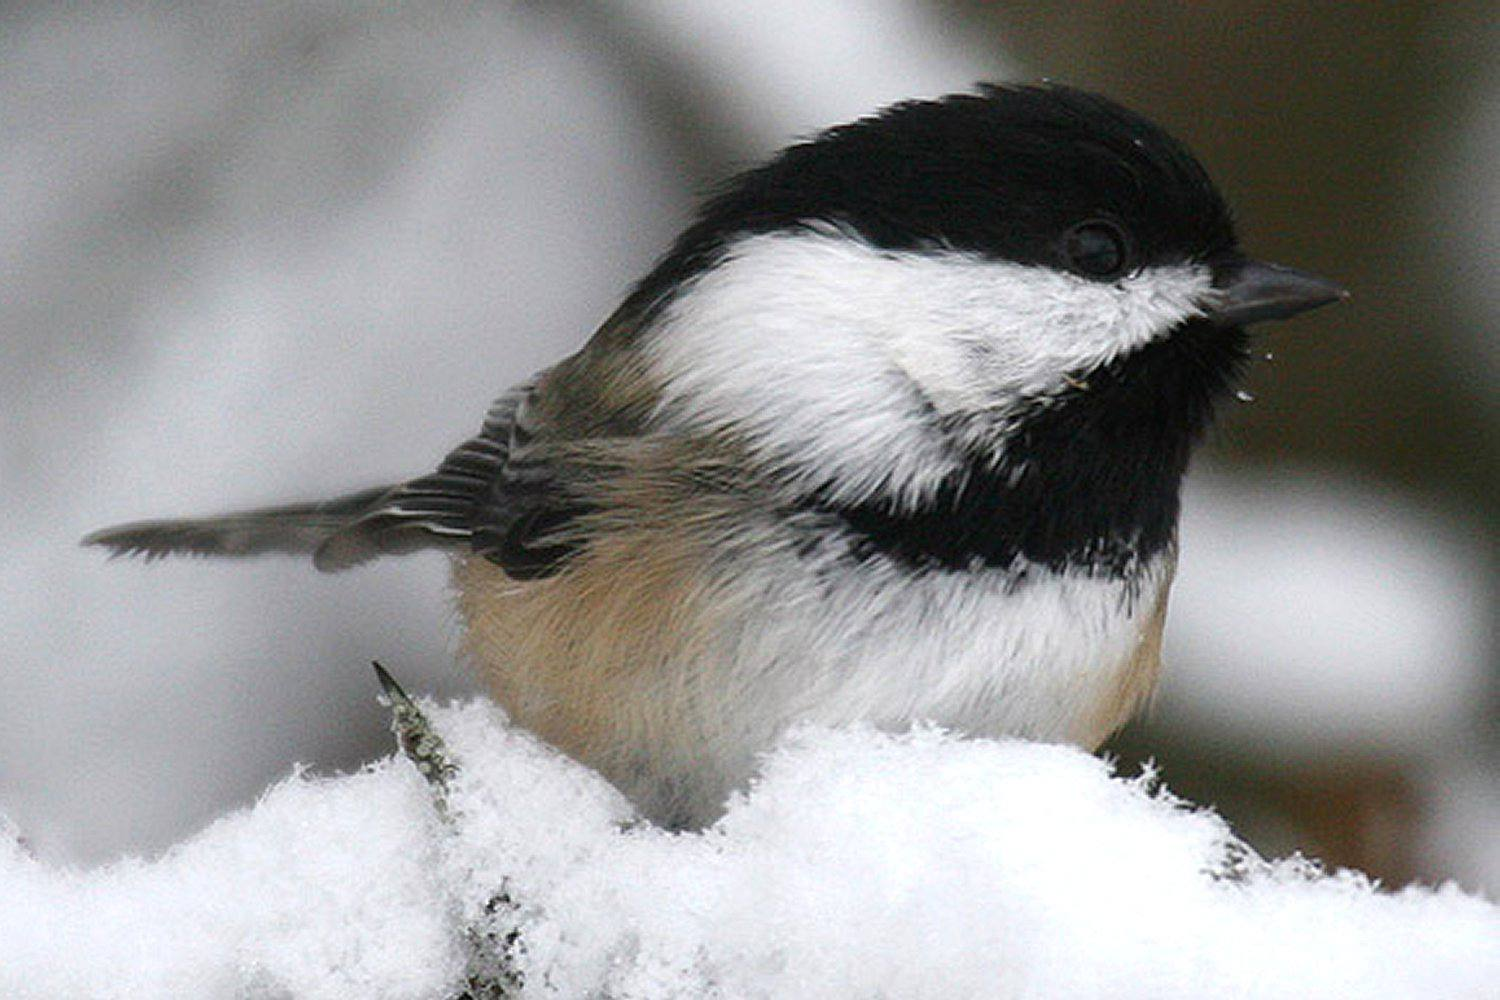 Black-Capped Chickadee, the state bird of Maine, sitting in snow.